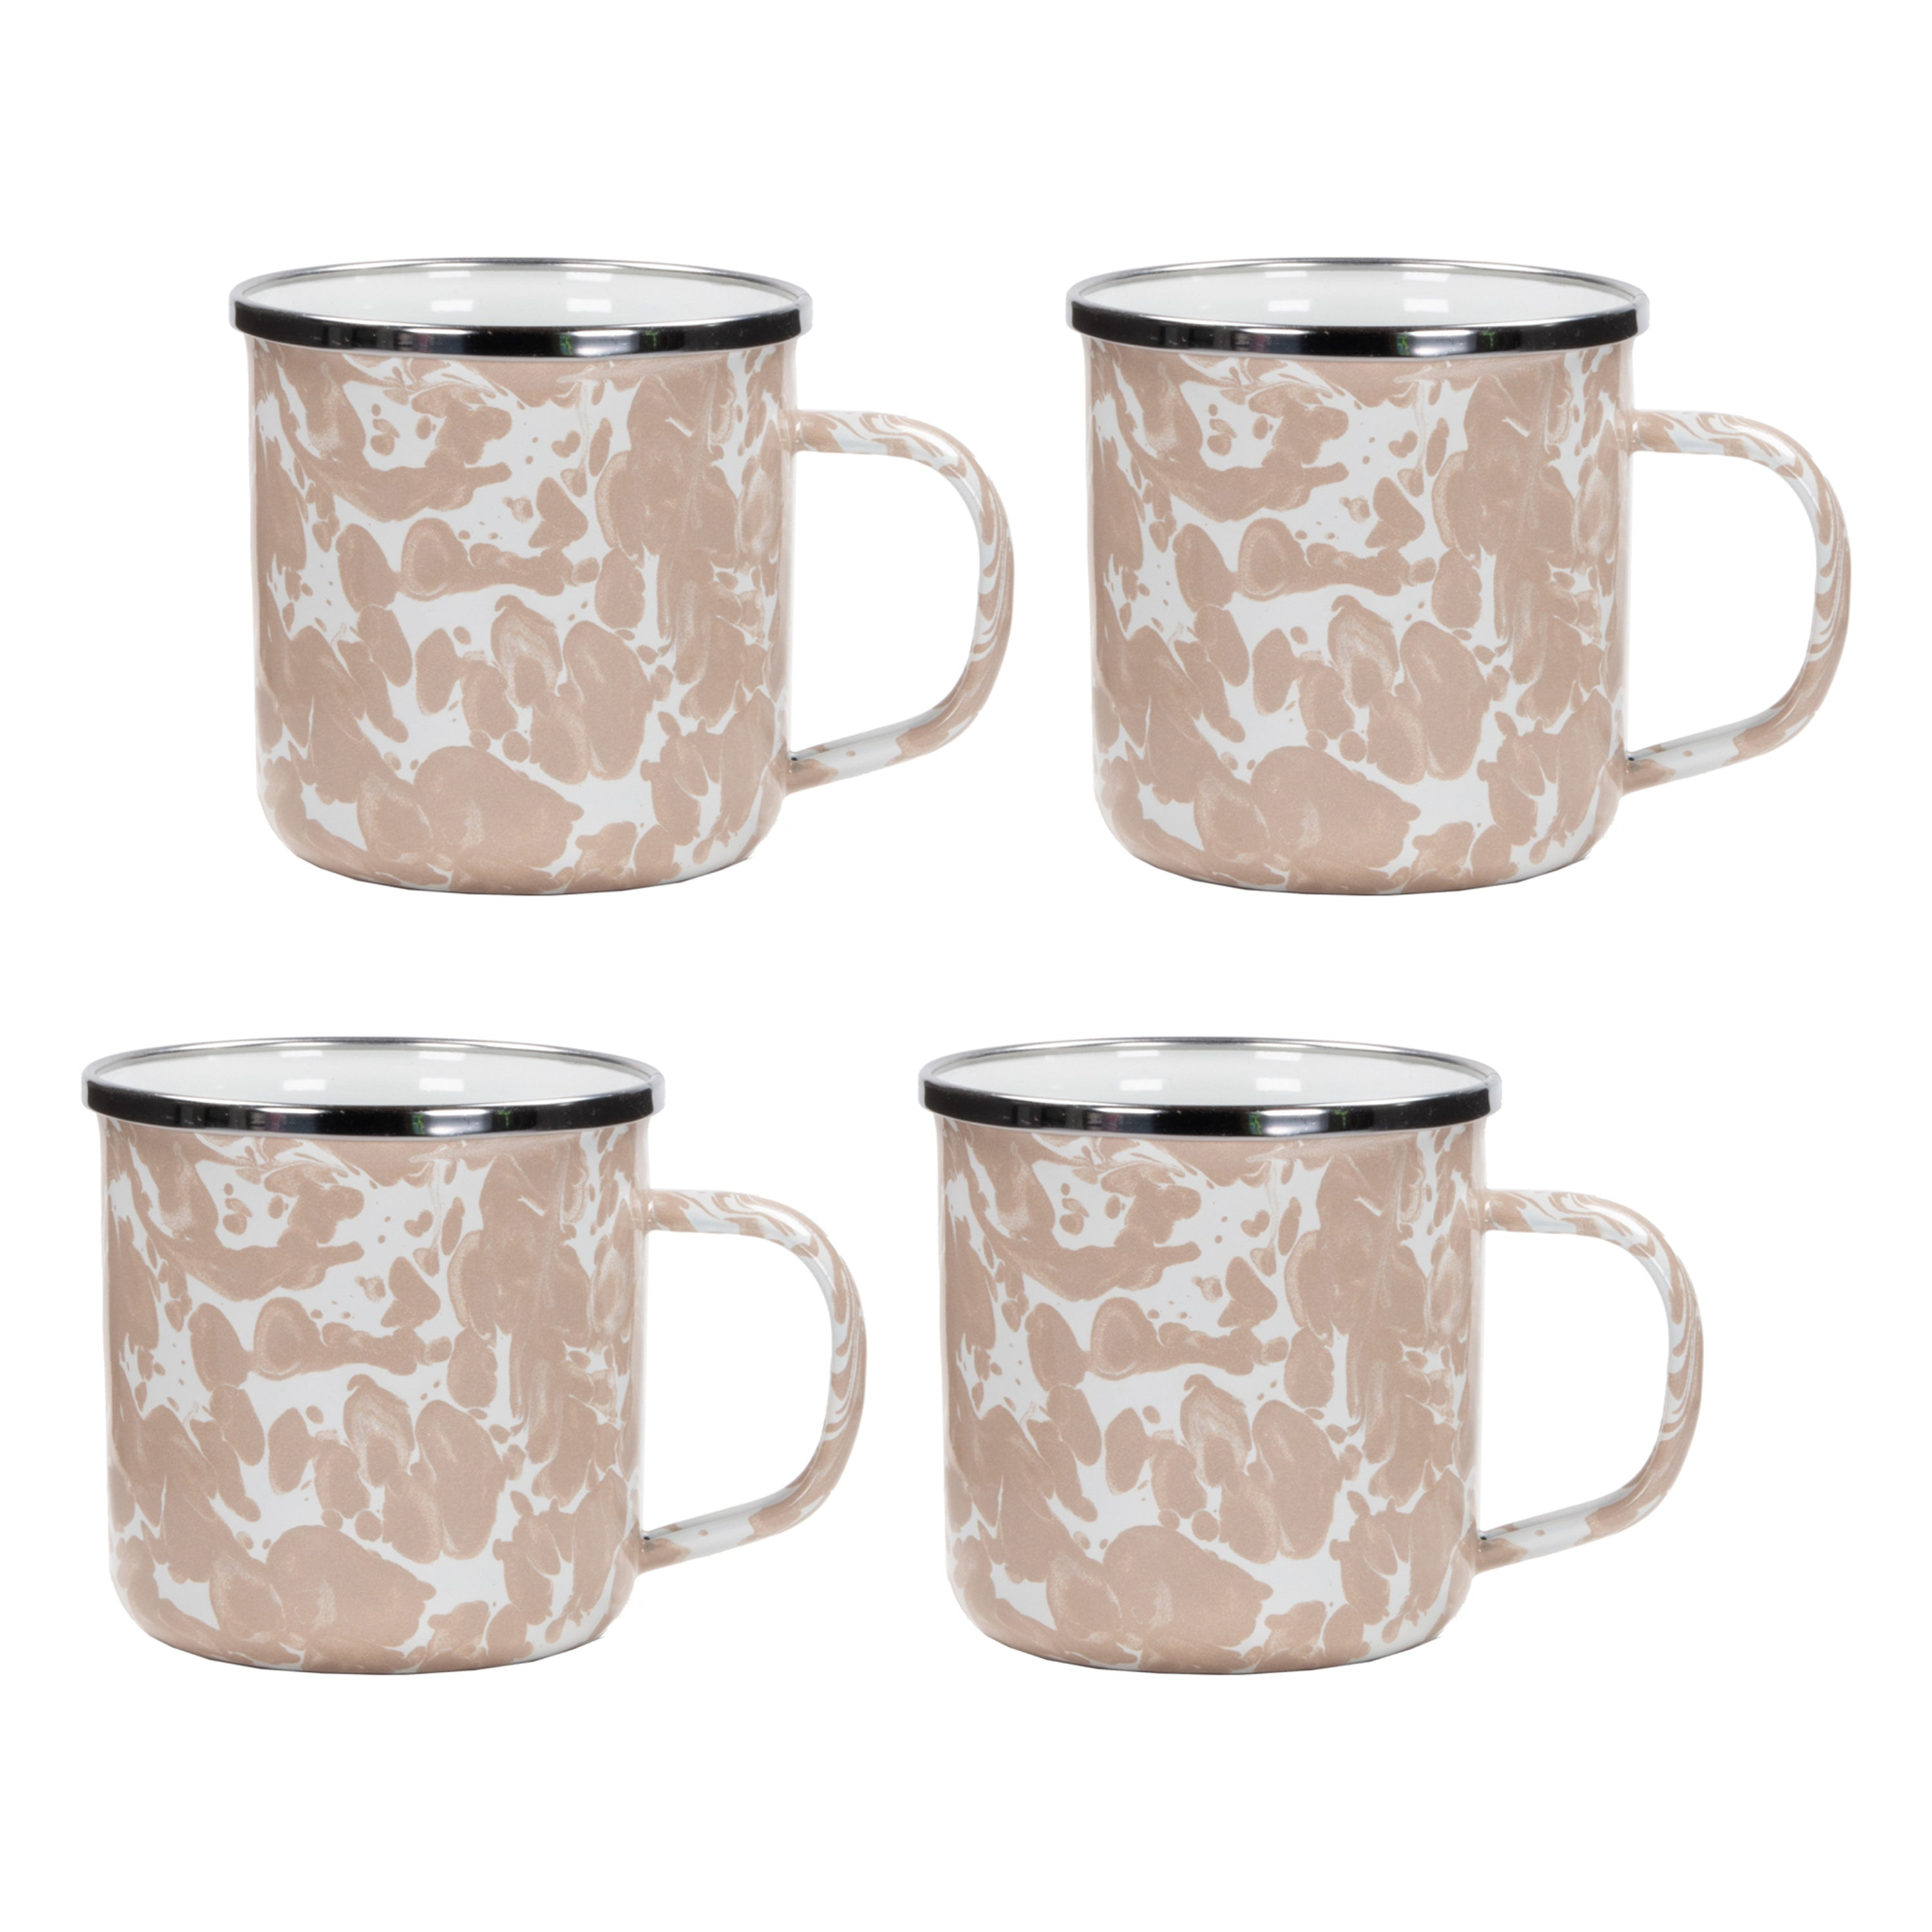 TP05S4 - Set of 4 Taupe Swirl Adult Mugs Image 1